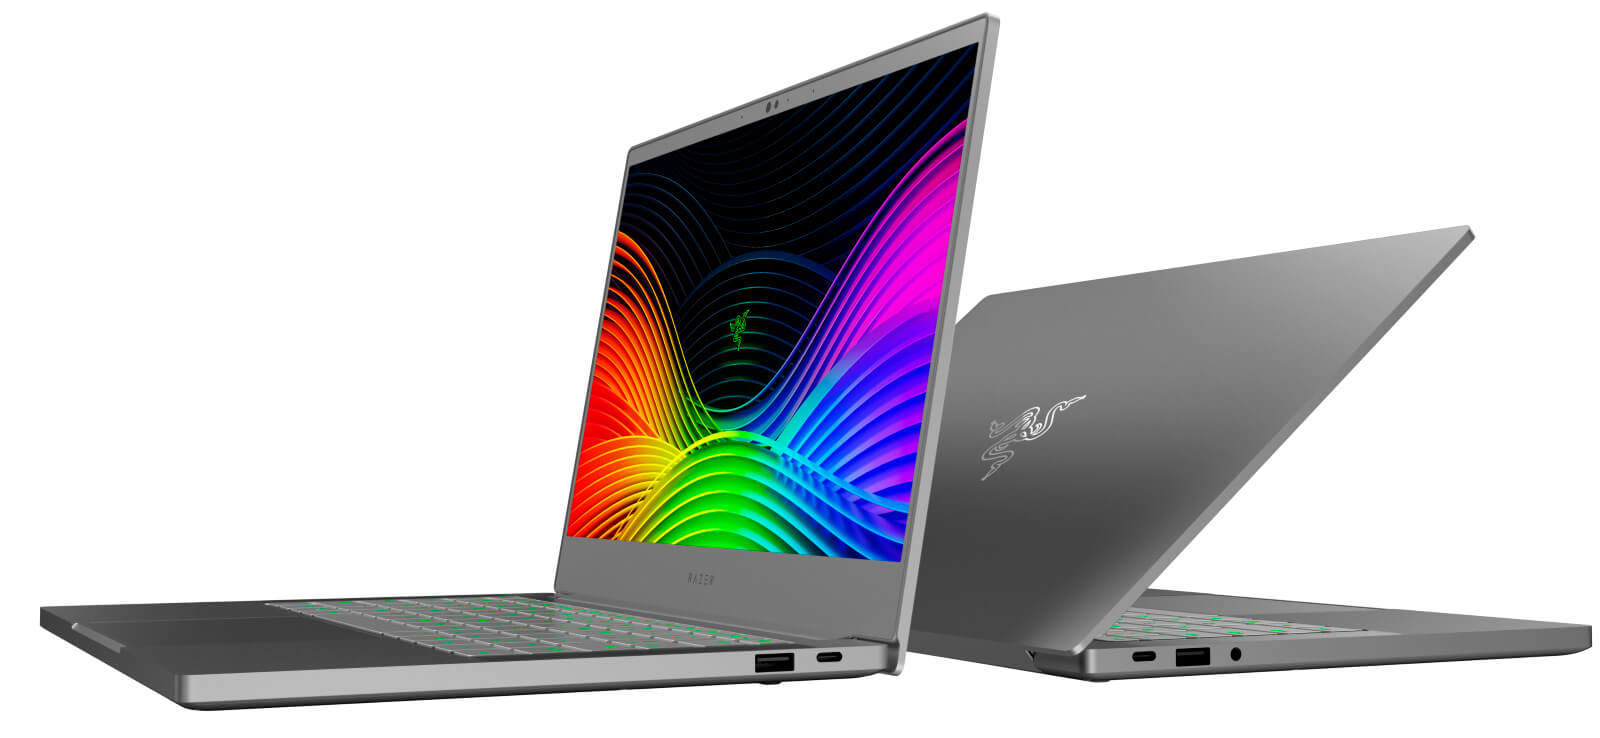 Razer Blade Stealth 13 (Mercury White)